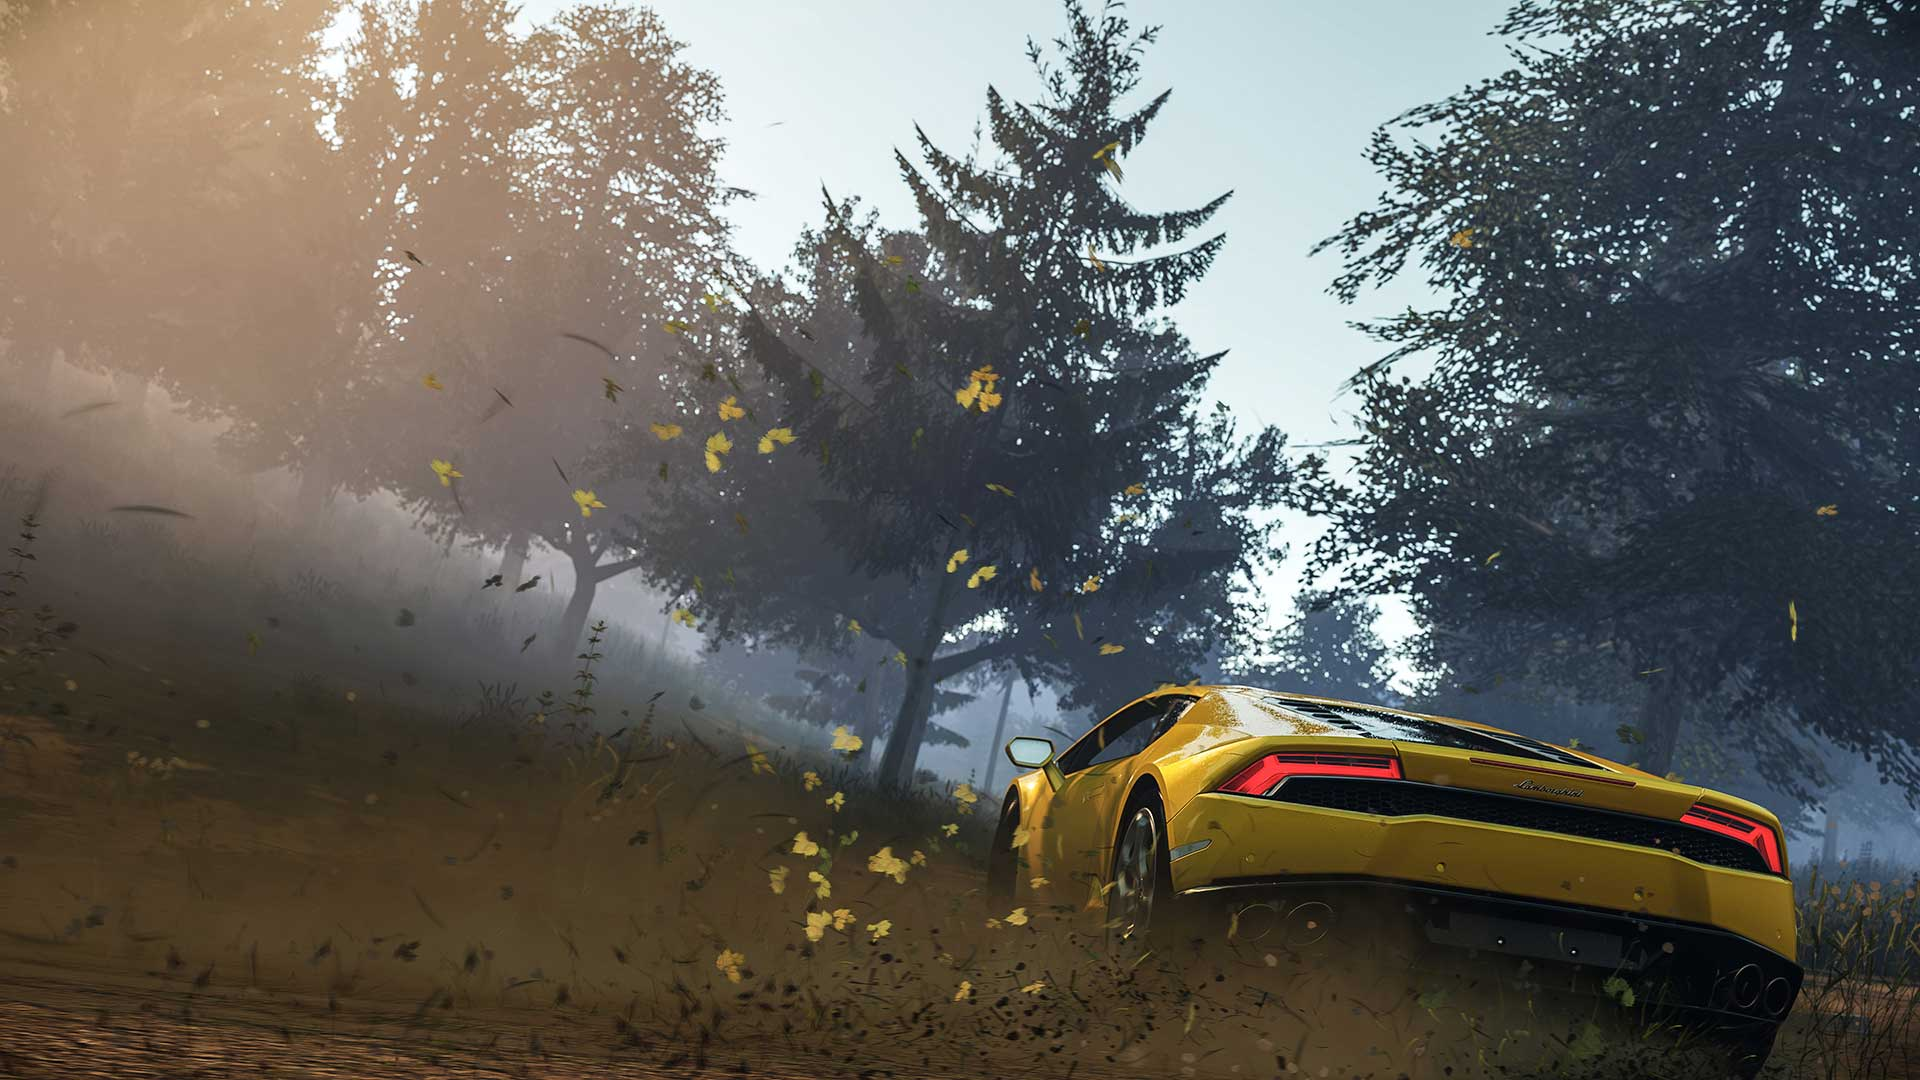 <strong>Forza Horizon 2</strong>                                                                          Turn 10's Euro-racer actually models light refracted through drops of moisture, the render tech plausibly simulating something as intangible but essential as the earth's atmosphere.